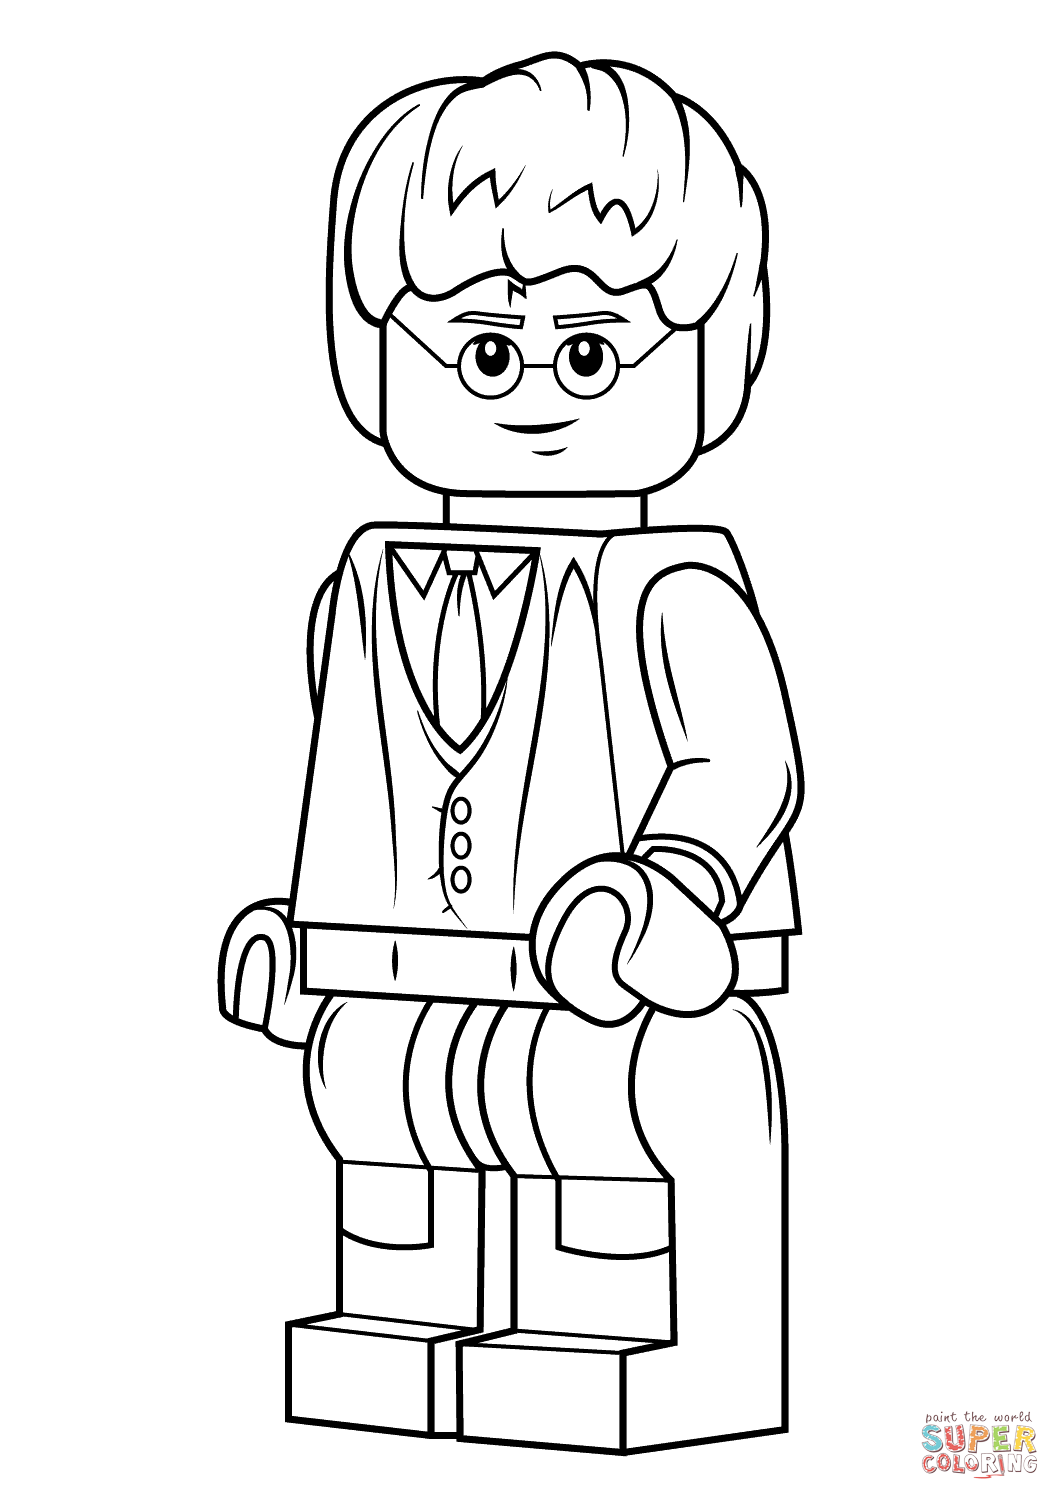 Harry Potter Coloring Pages Draco Malfoy